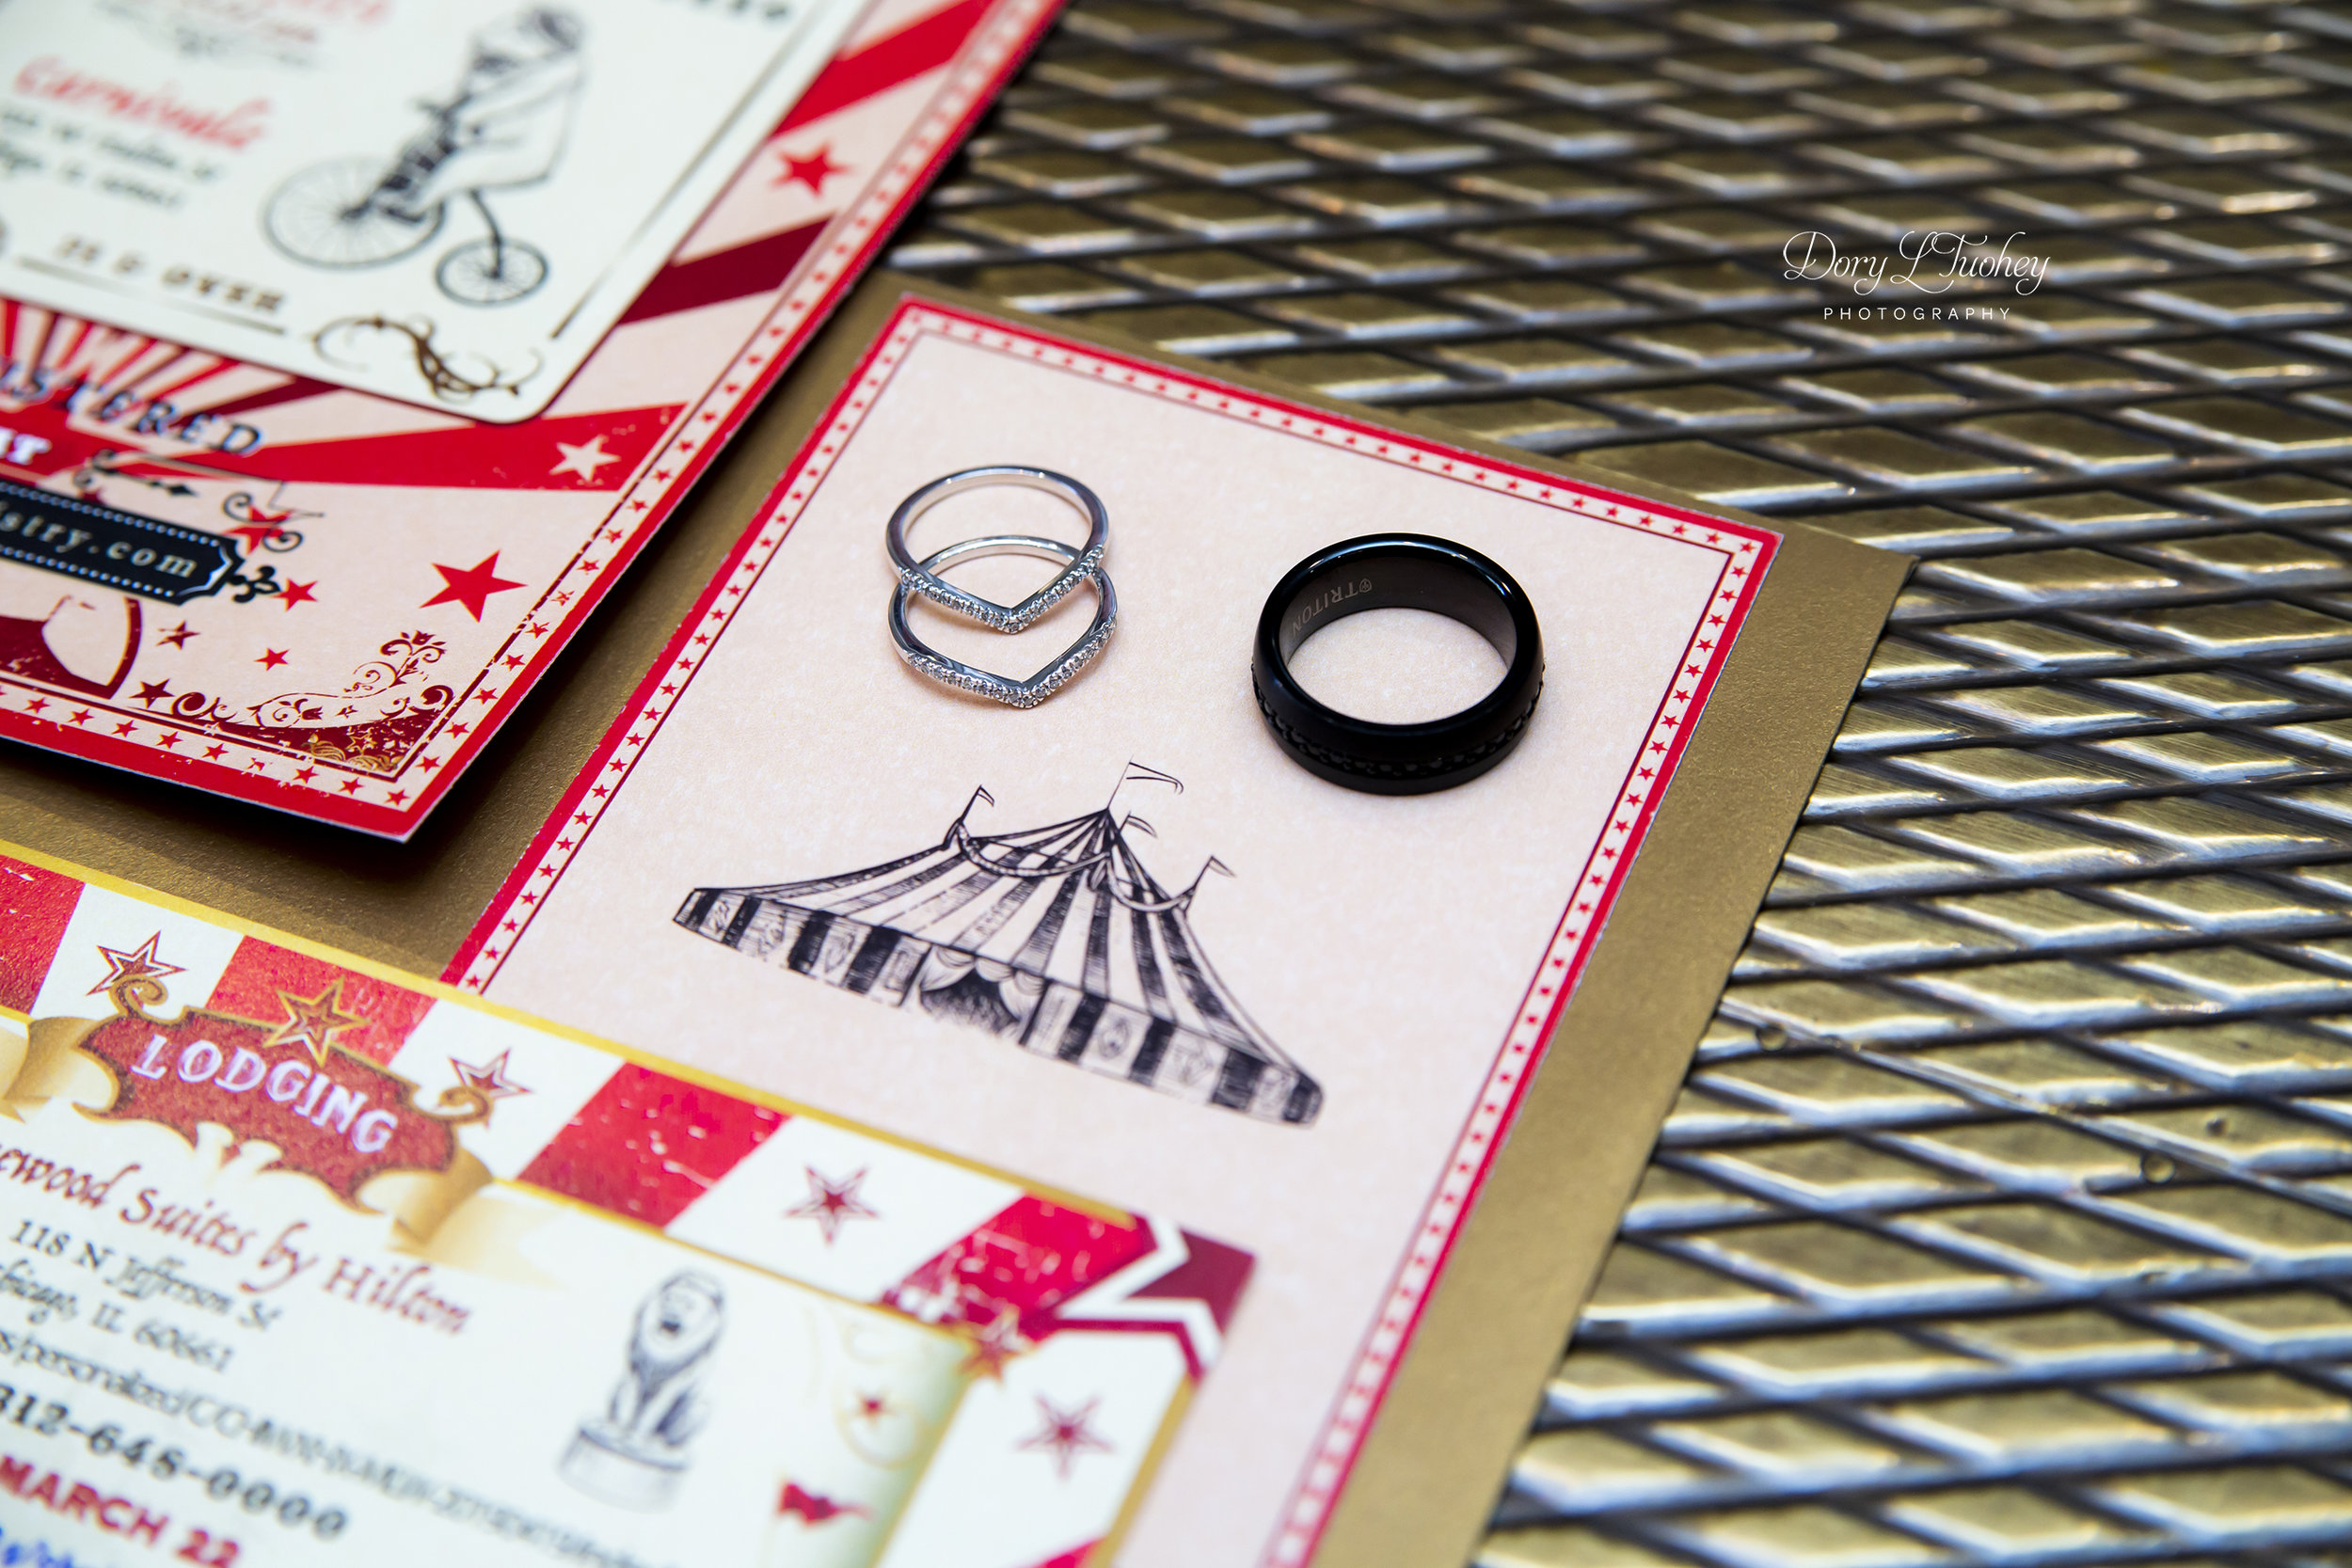 The rings with the invitation collection designed by the groom himself.